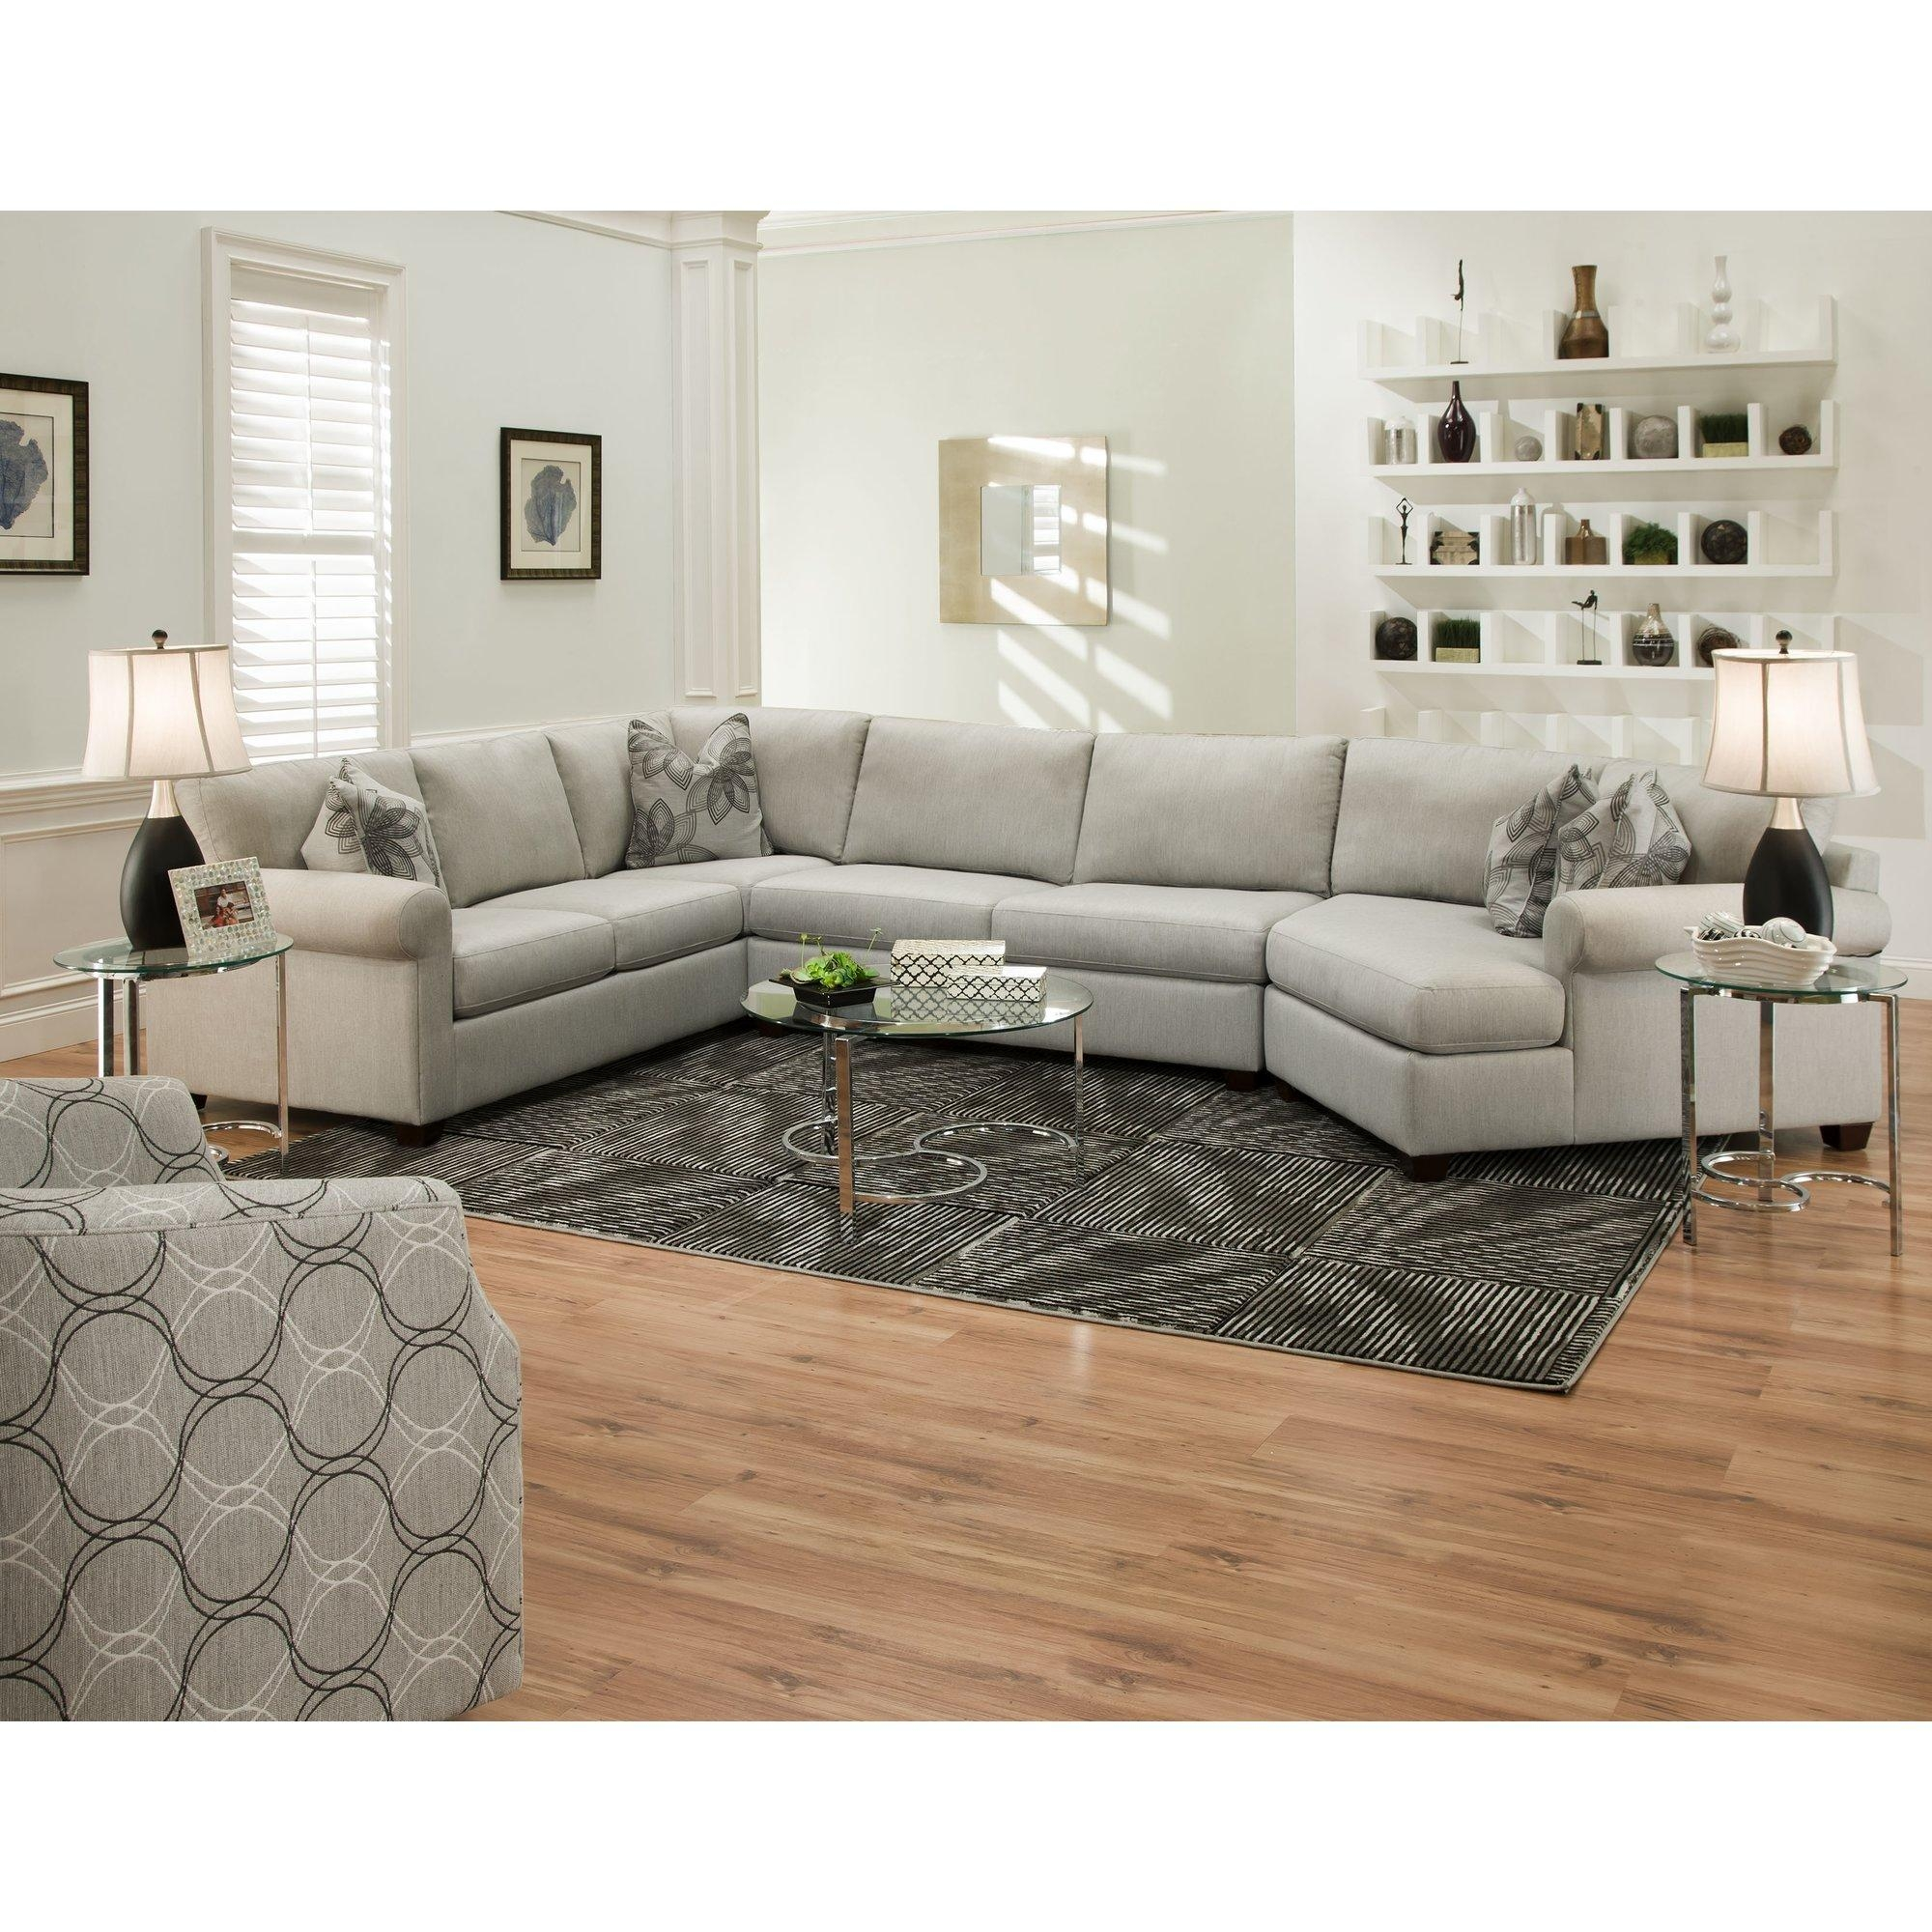 lc5 sofa review red faux leather sleeper bauhaus reviews photo gallery of sectional